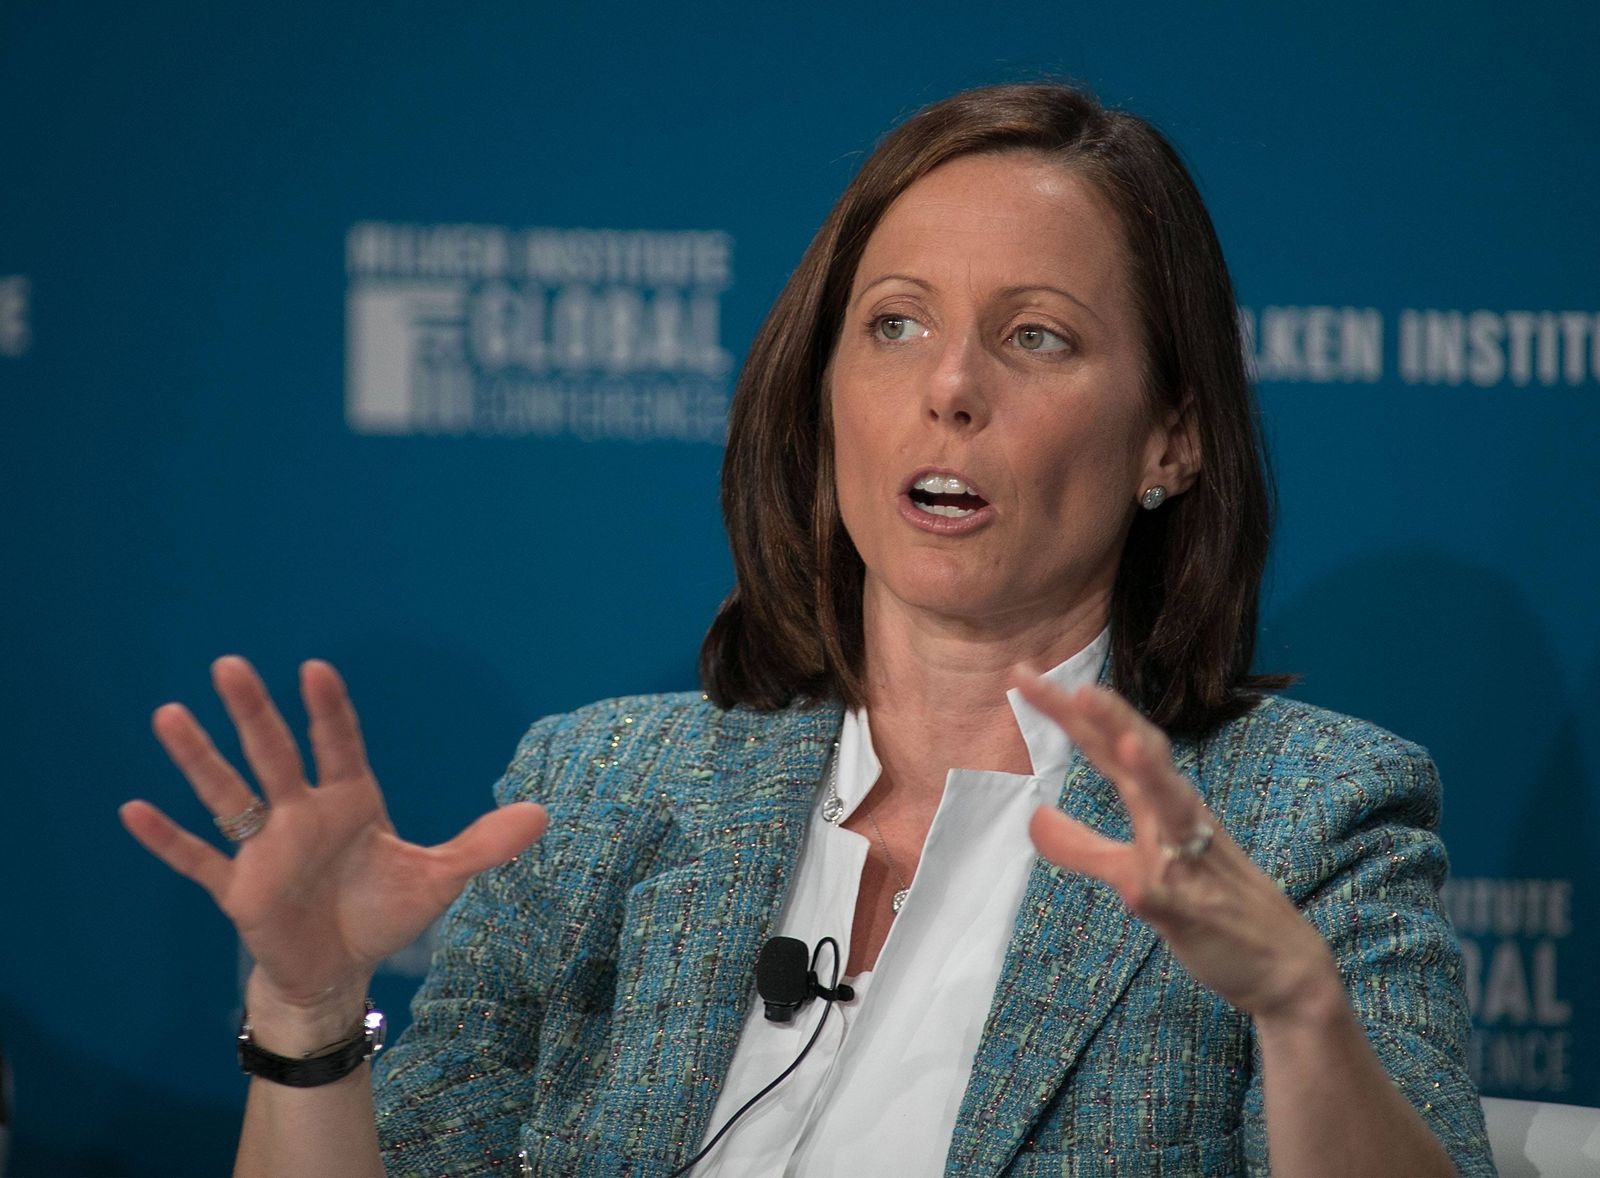 May 1 2017 Beverly Hills California U S Adena Friedman during the 2017 Milken Institute Globa